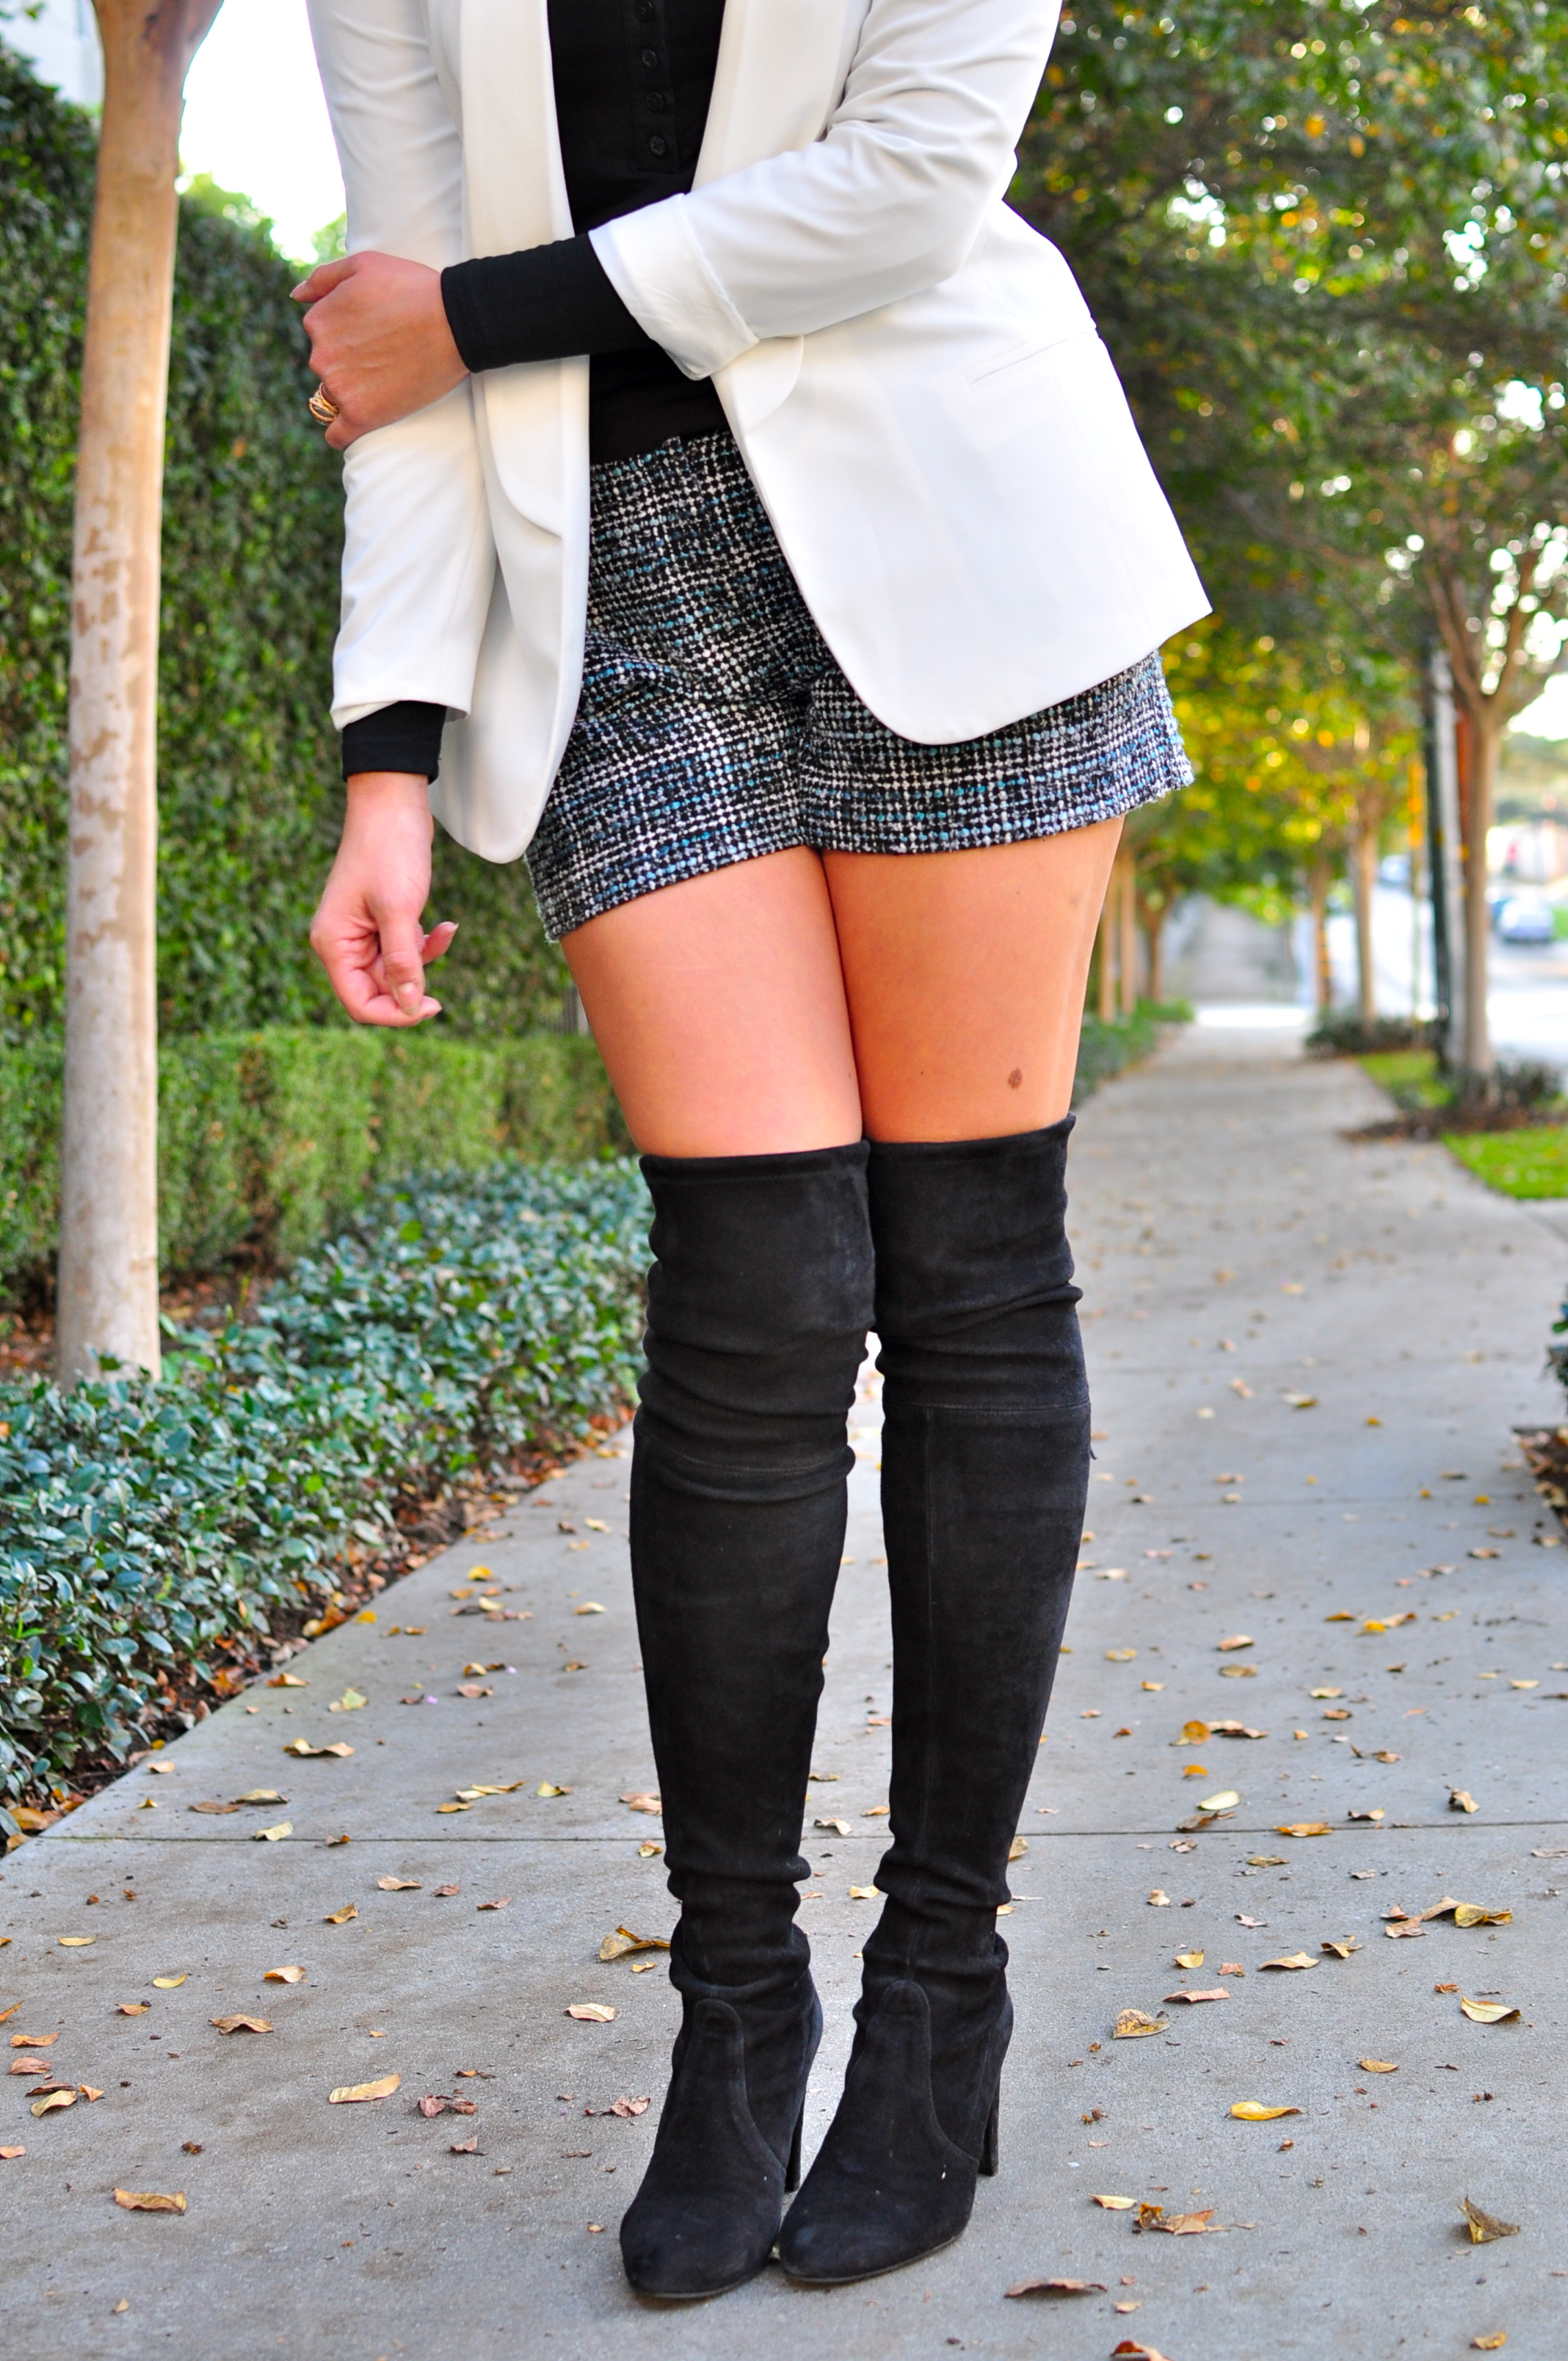 Thigh High Boots With Shorts Miss Zias